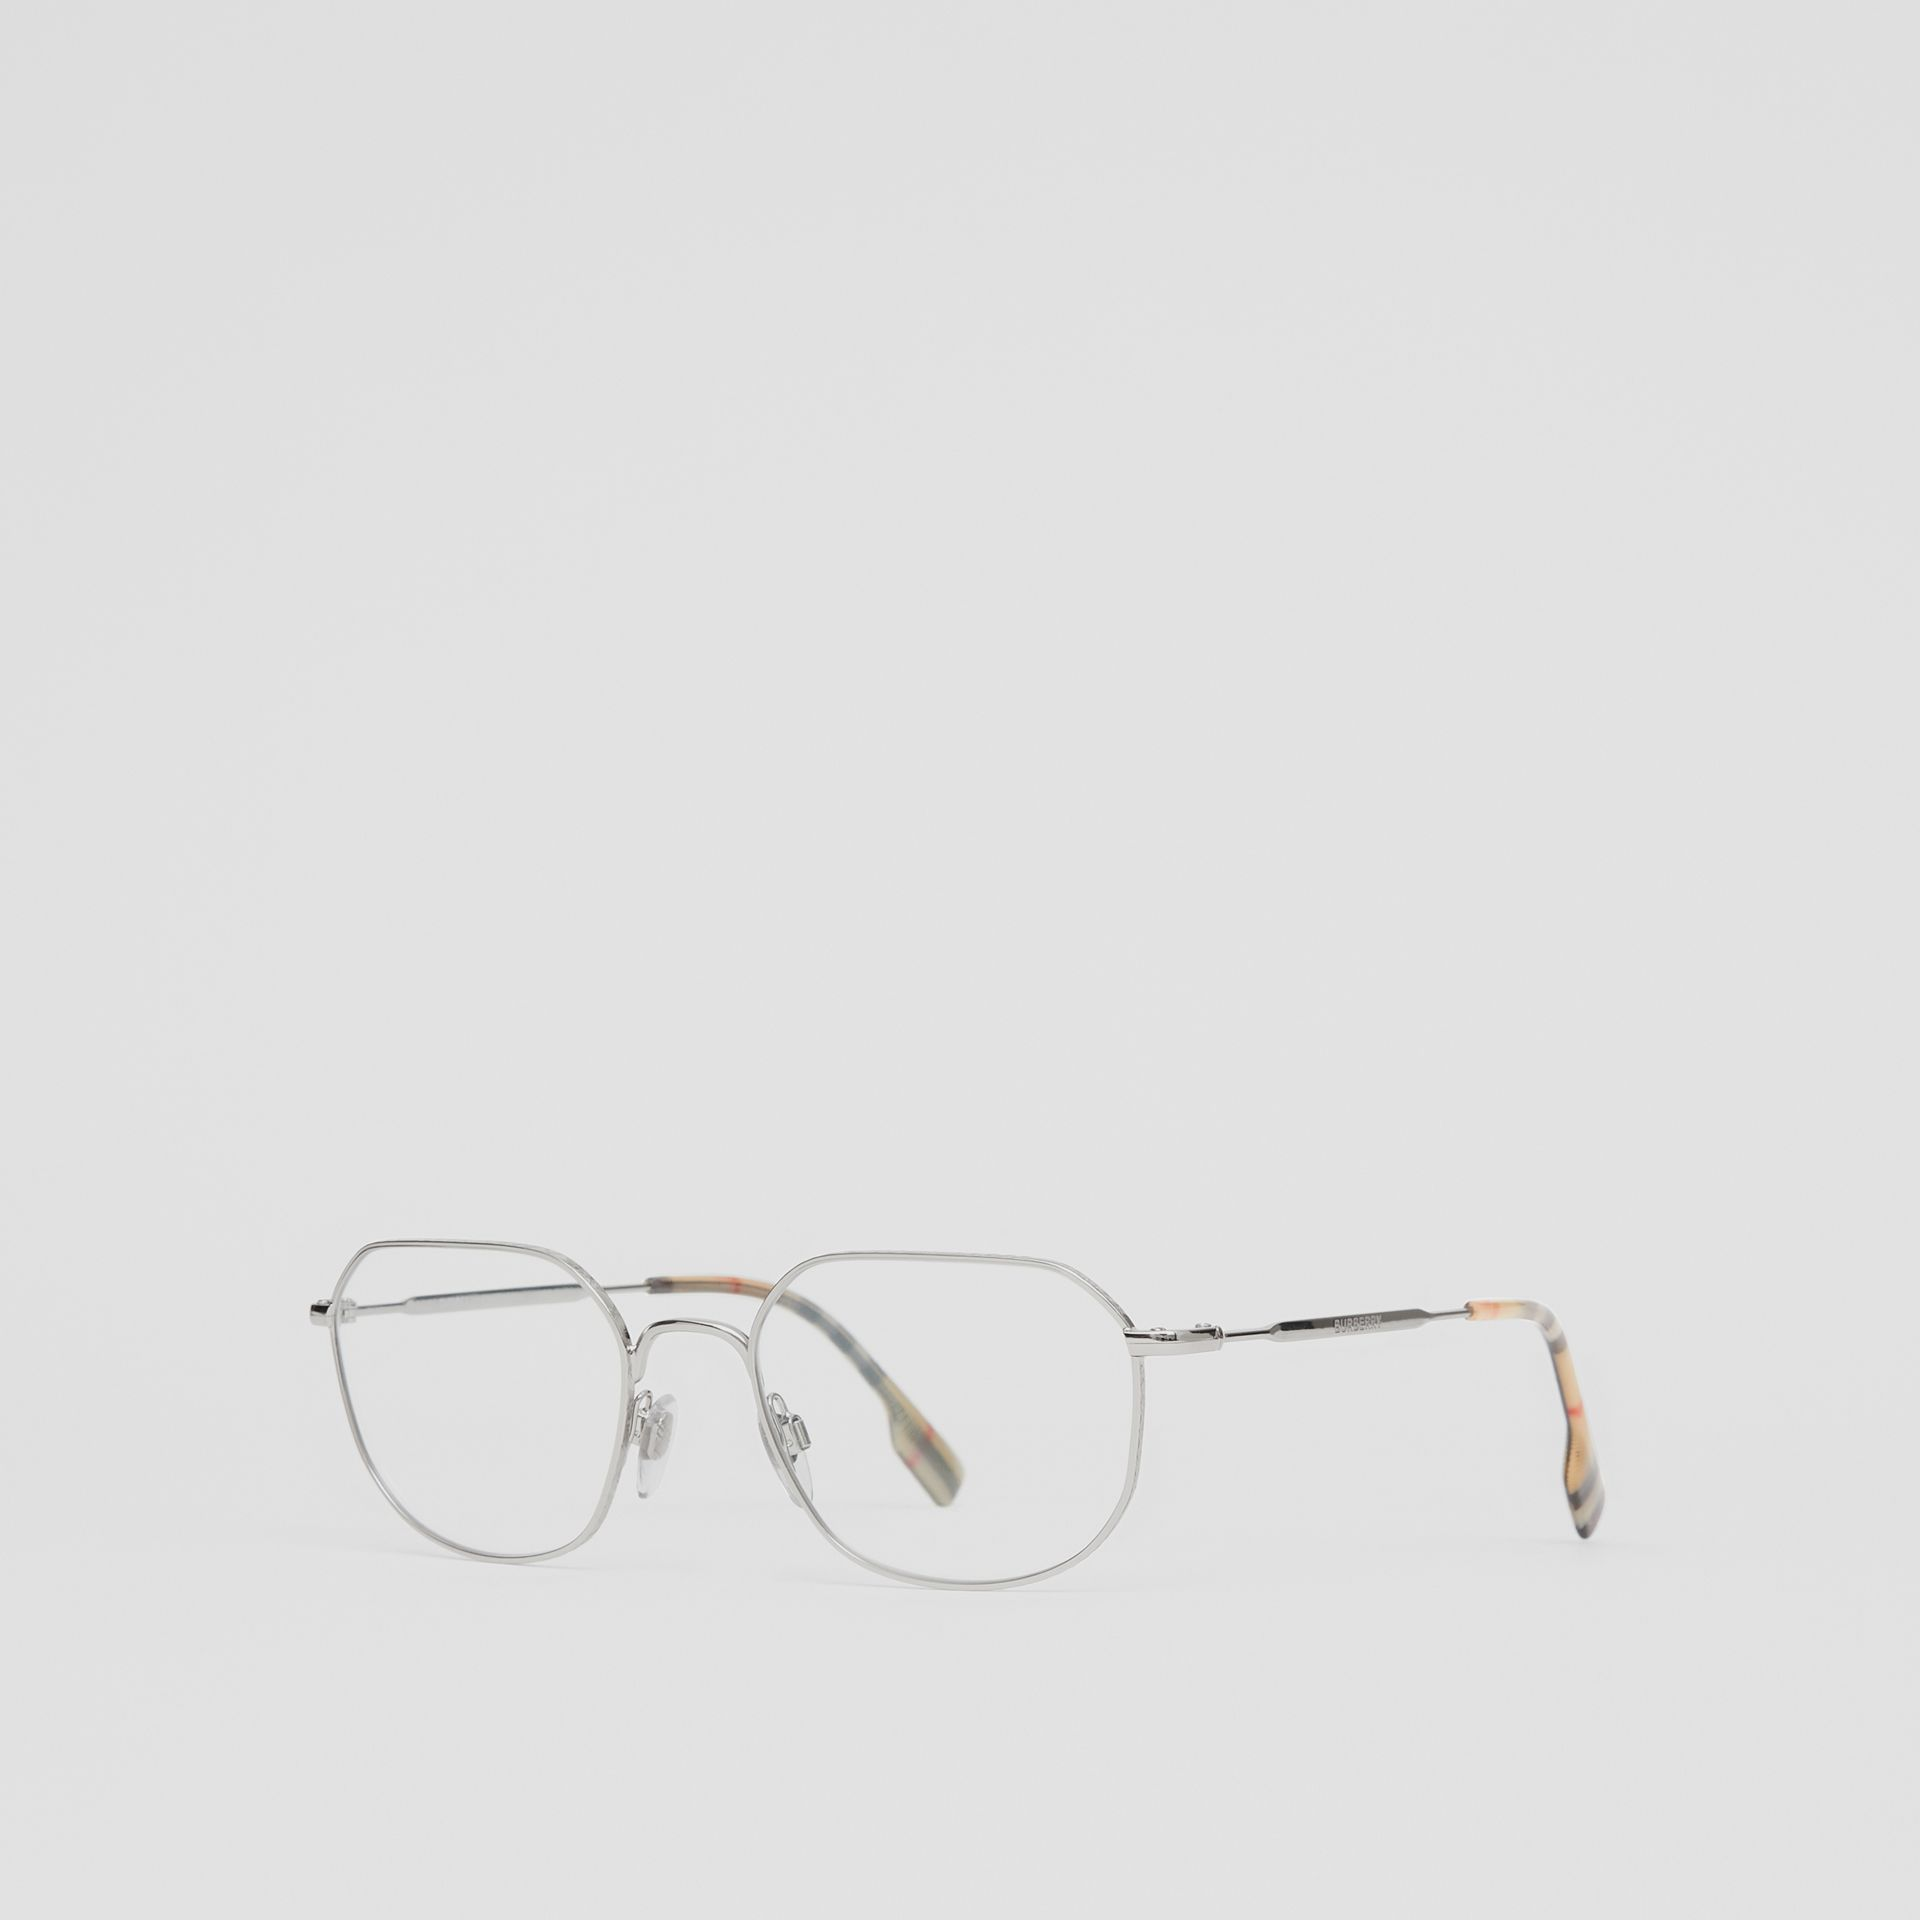 Palladium-plated Square Optical Frames in Silver - Women | Burberry - gallery image 5